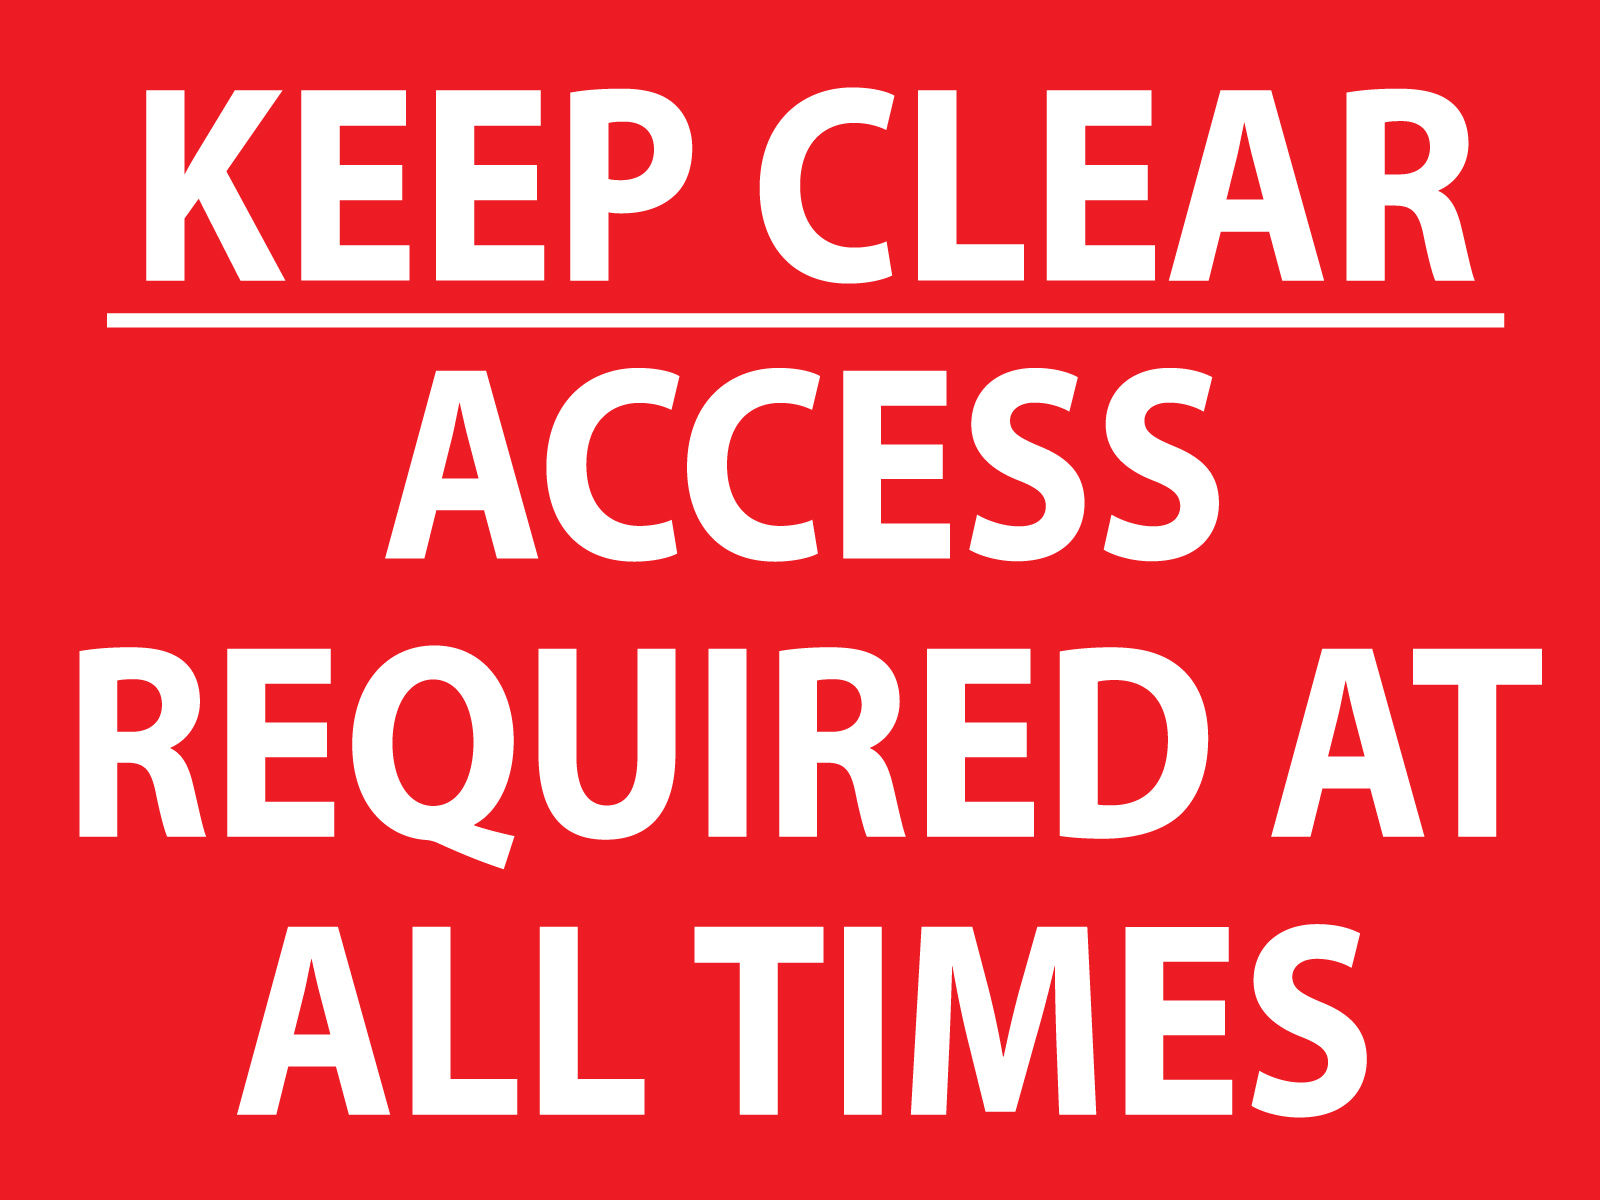 keep-clear-access.jpg